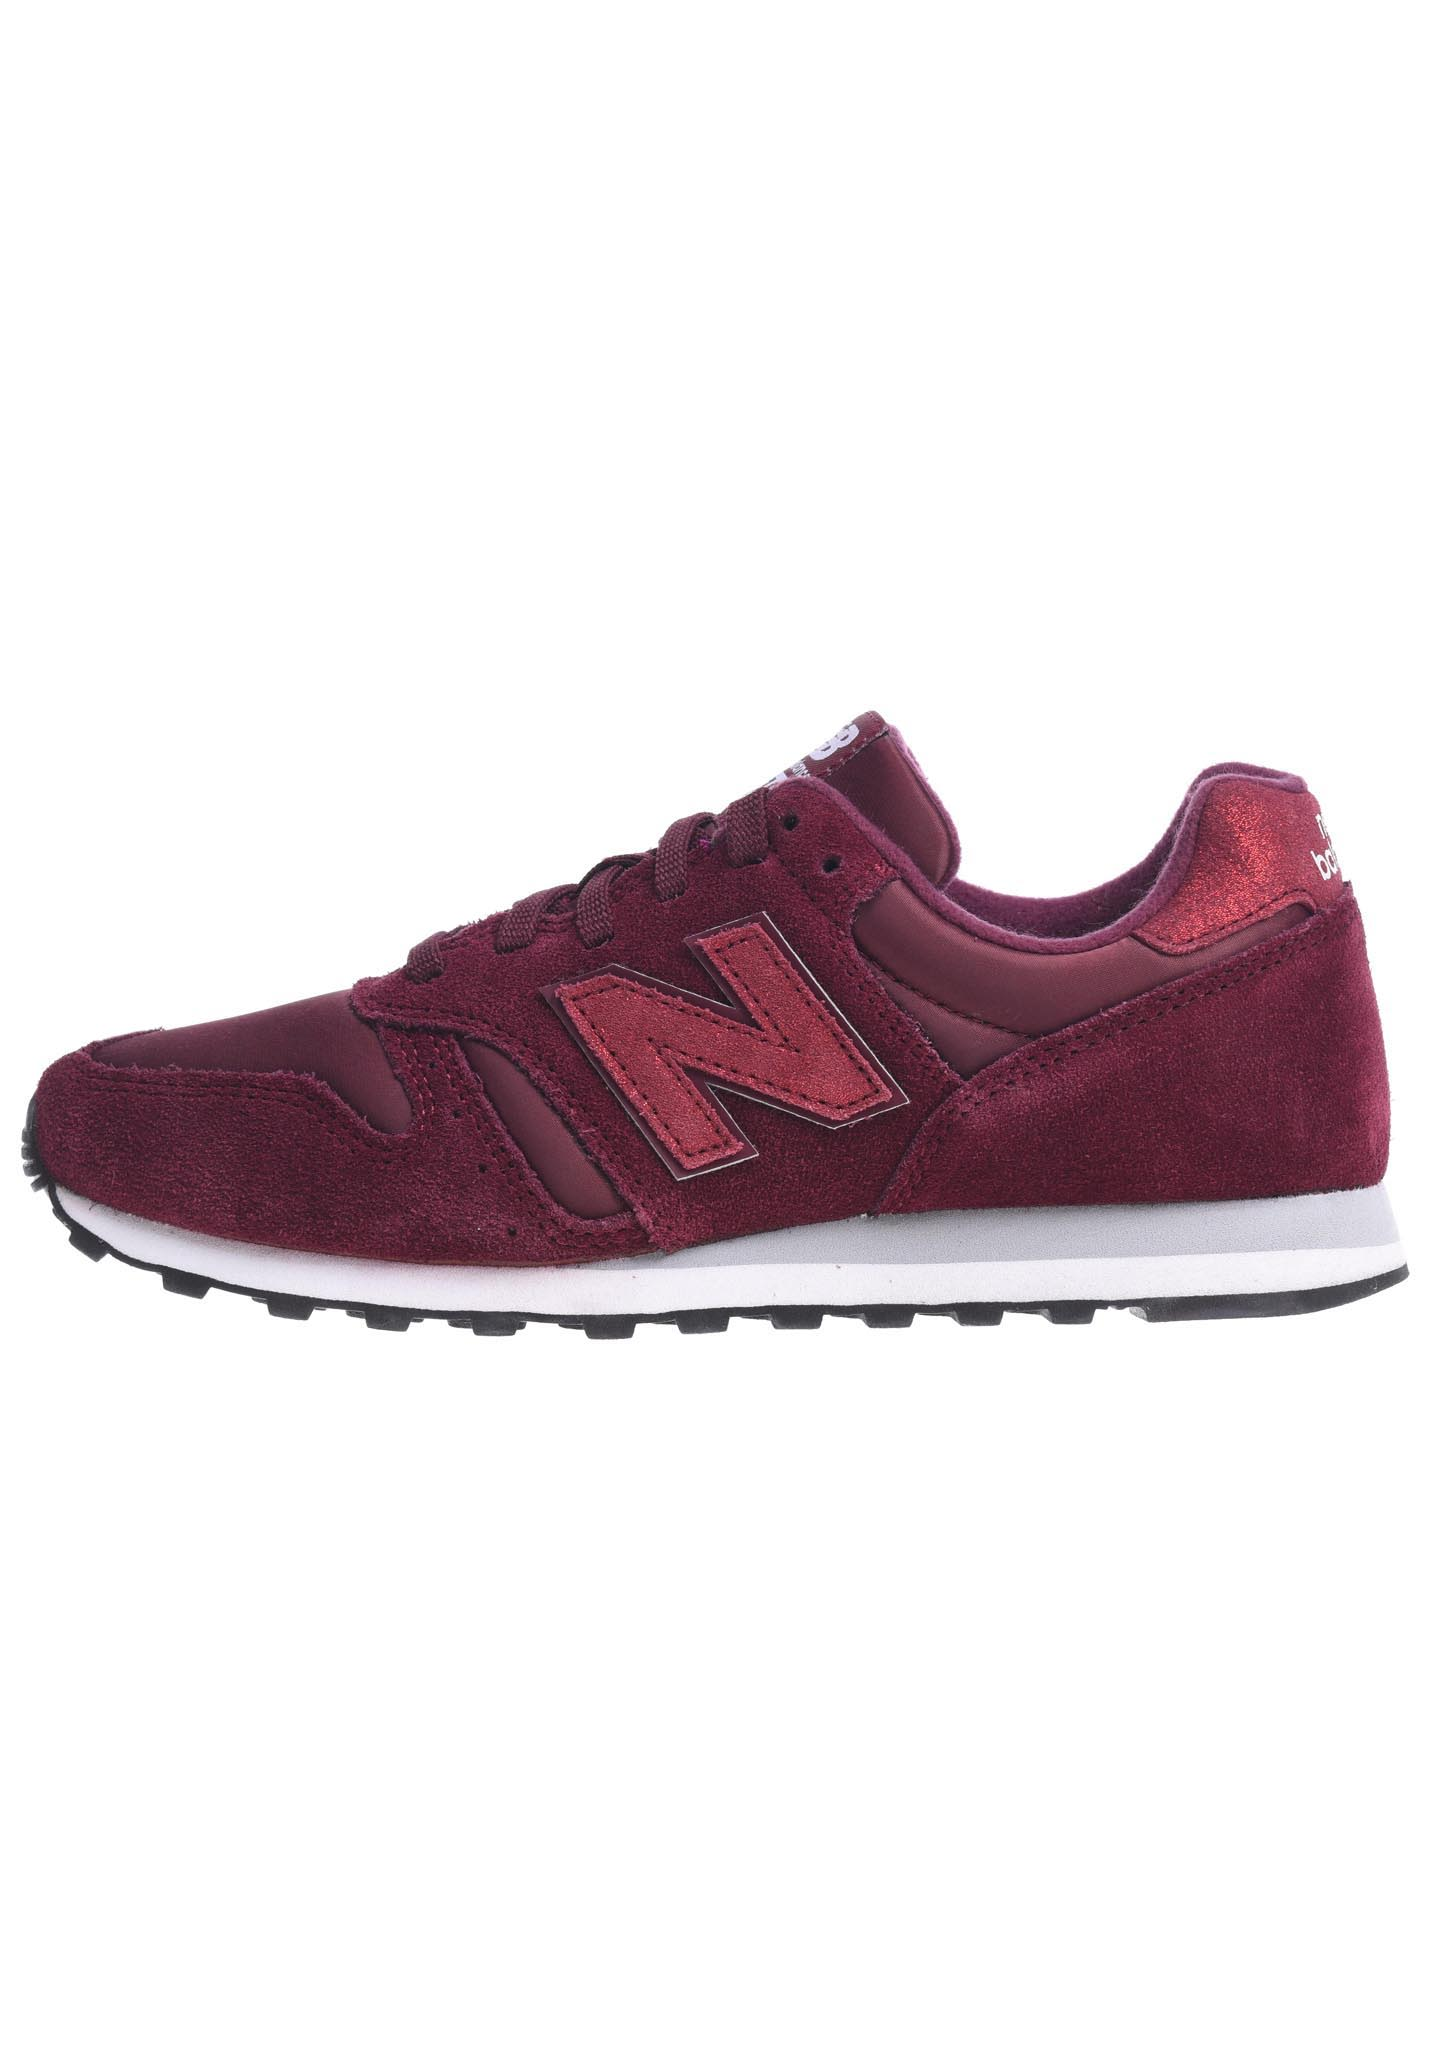 red new balance women's sneakers off 63% - demo.myexponet.com